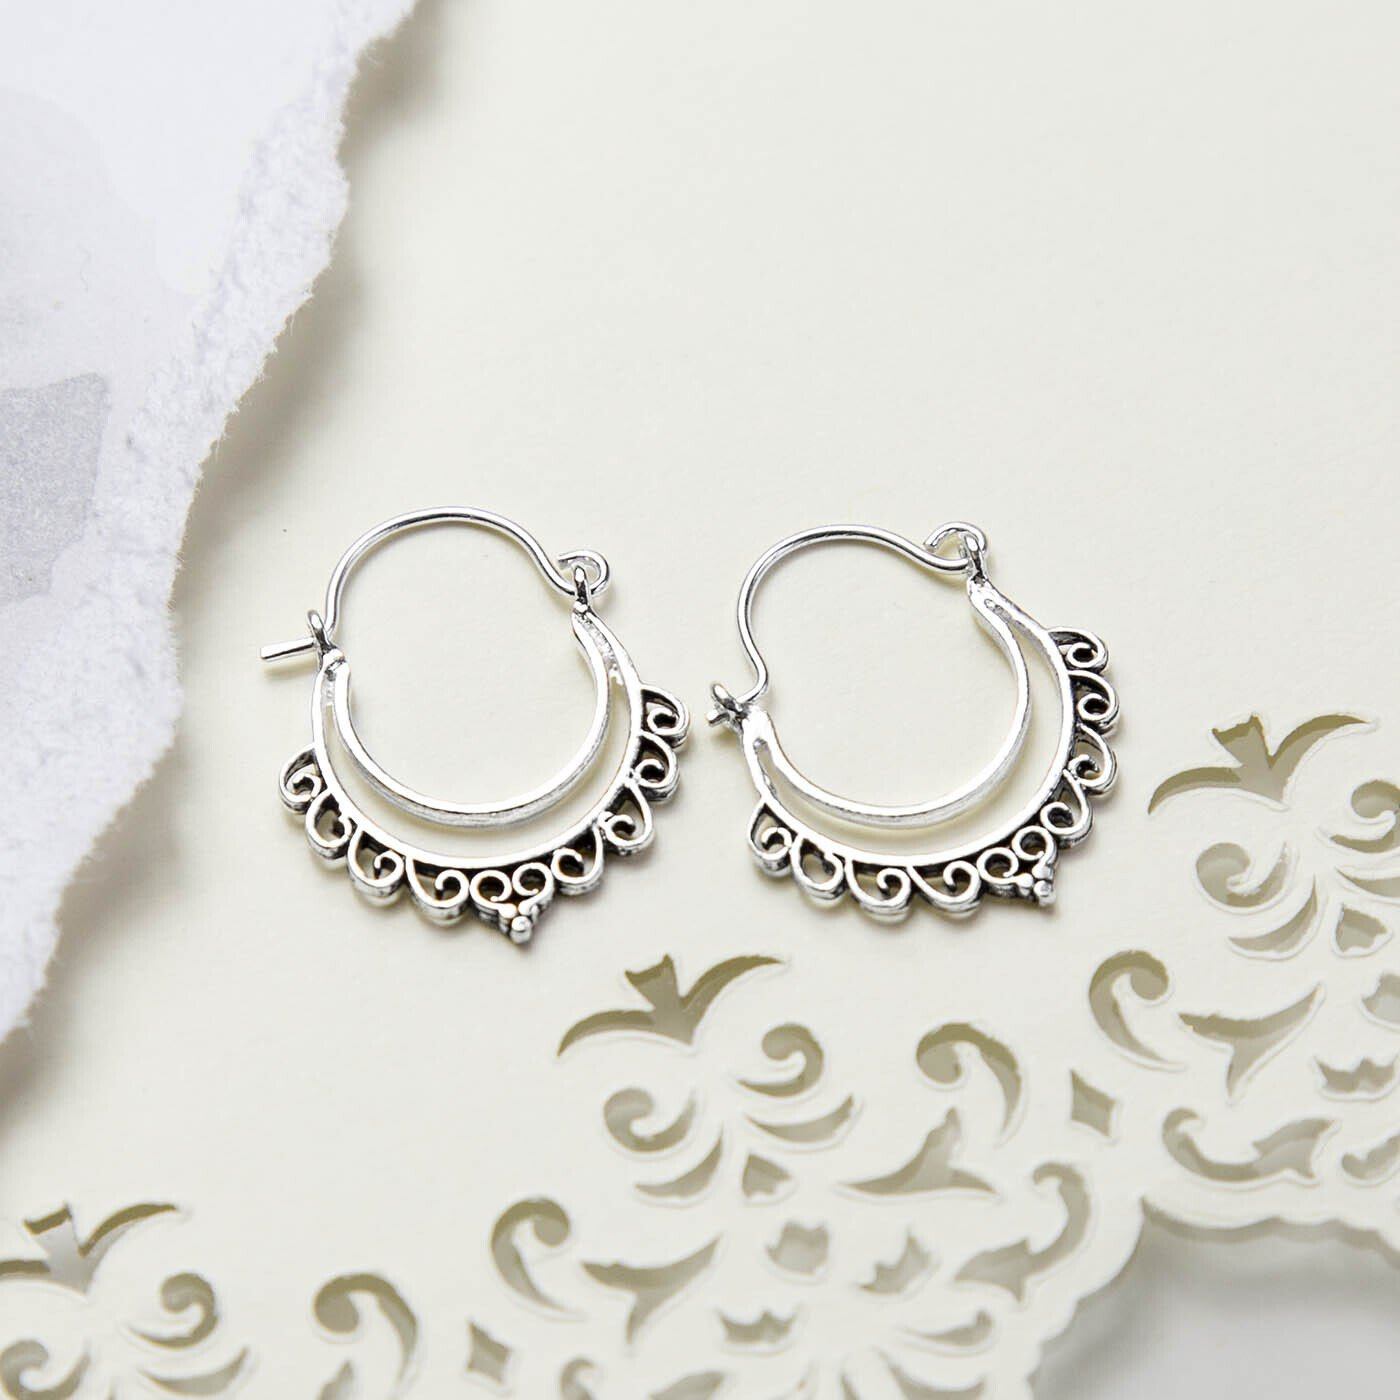 Sterling Silver Persian Waves Hoops on cream paper with ripped and pattern detail